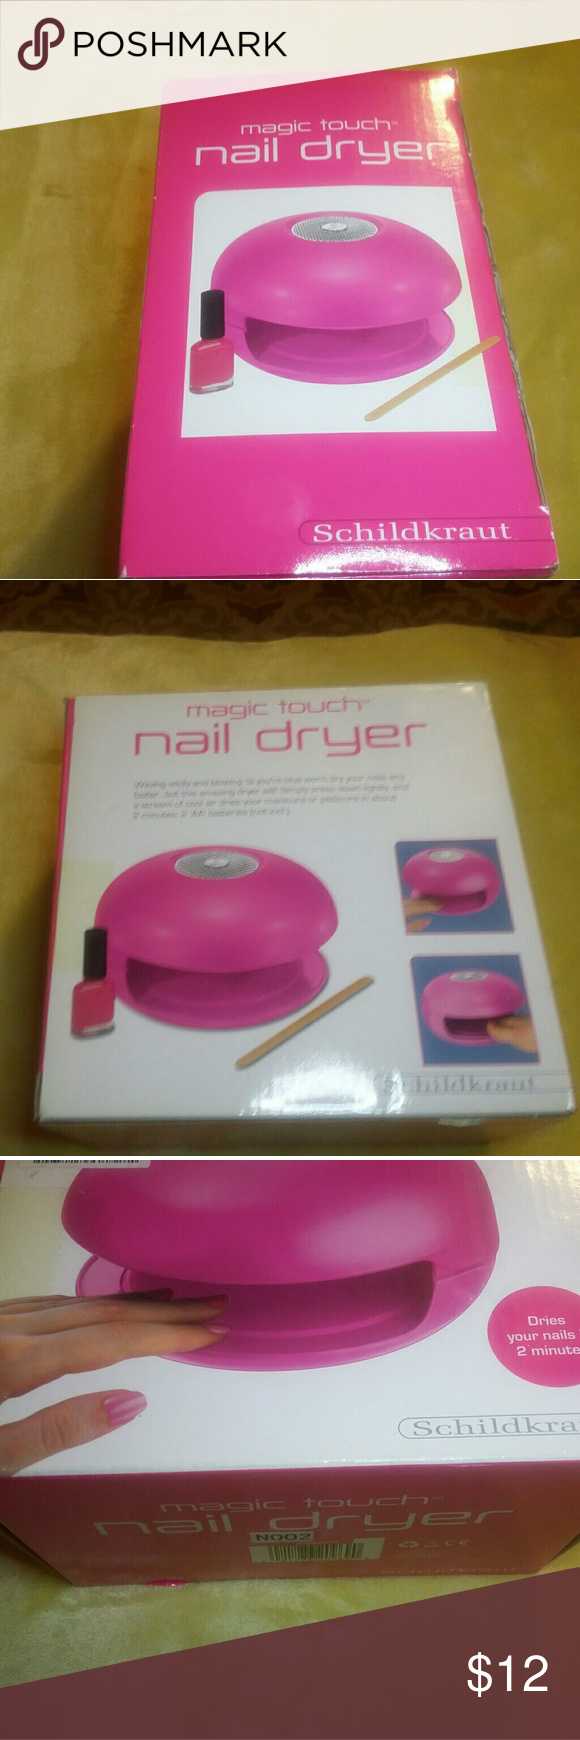 2 mins Magic touch Nail dryer NWT | Nail drying, Customer support ...